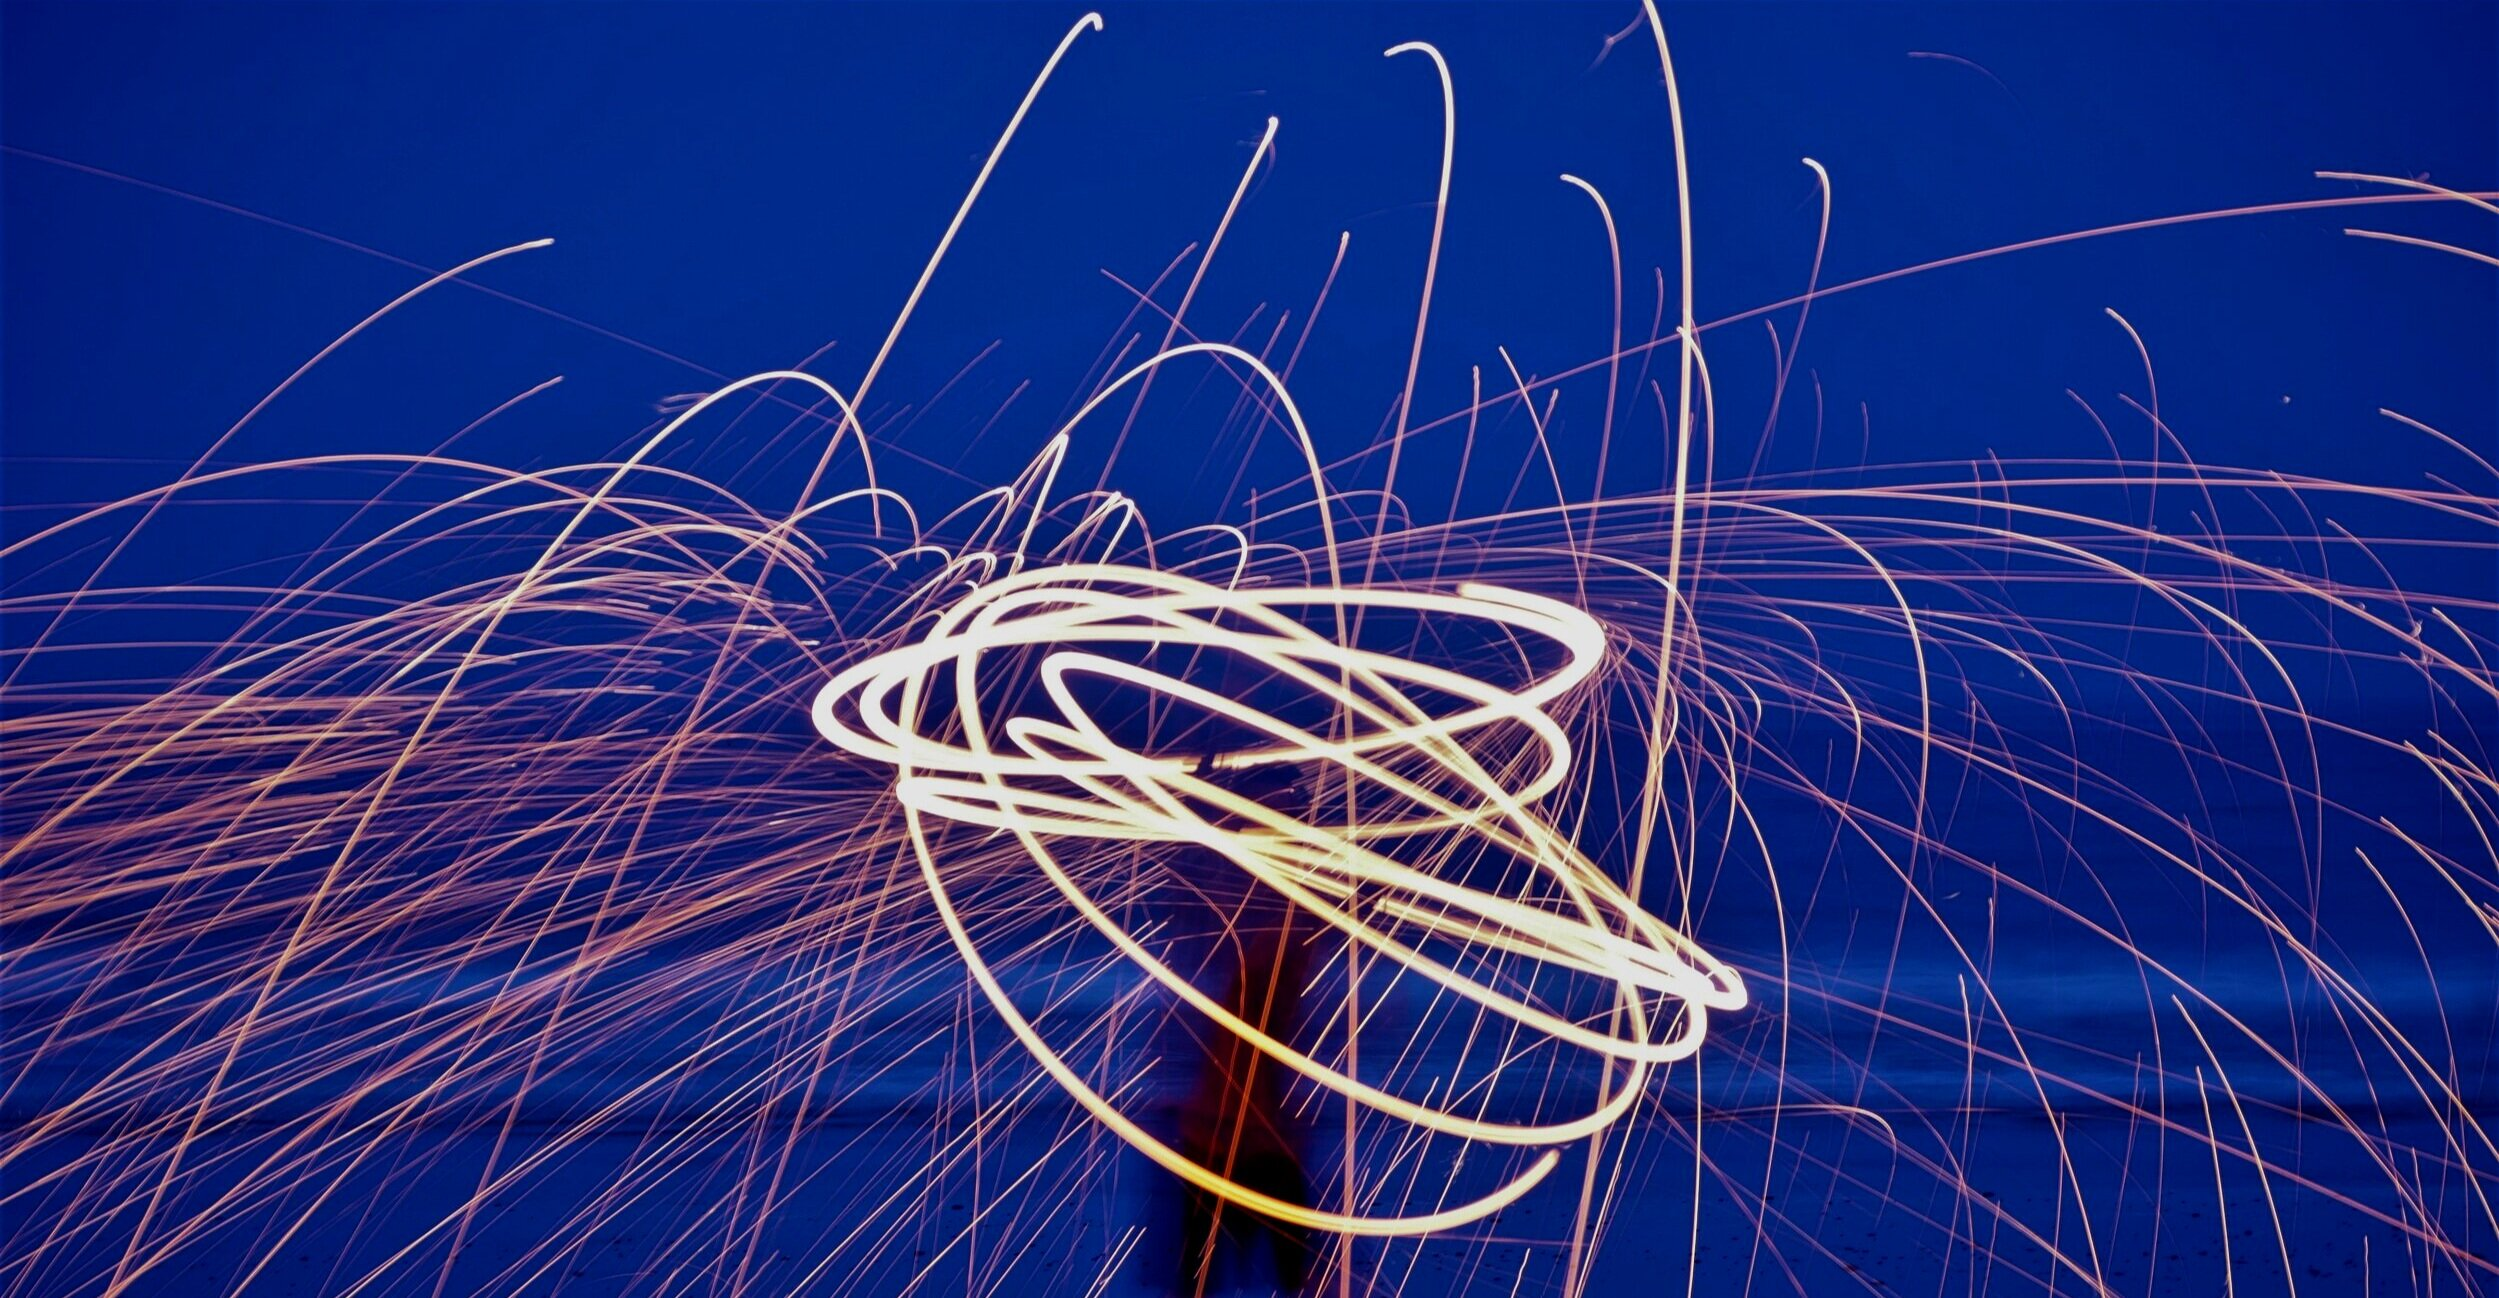 From a little spark may burst a flame. ~ Dante Alighieri